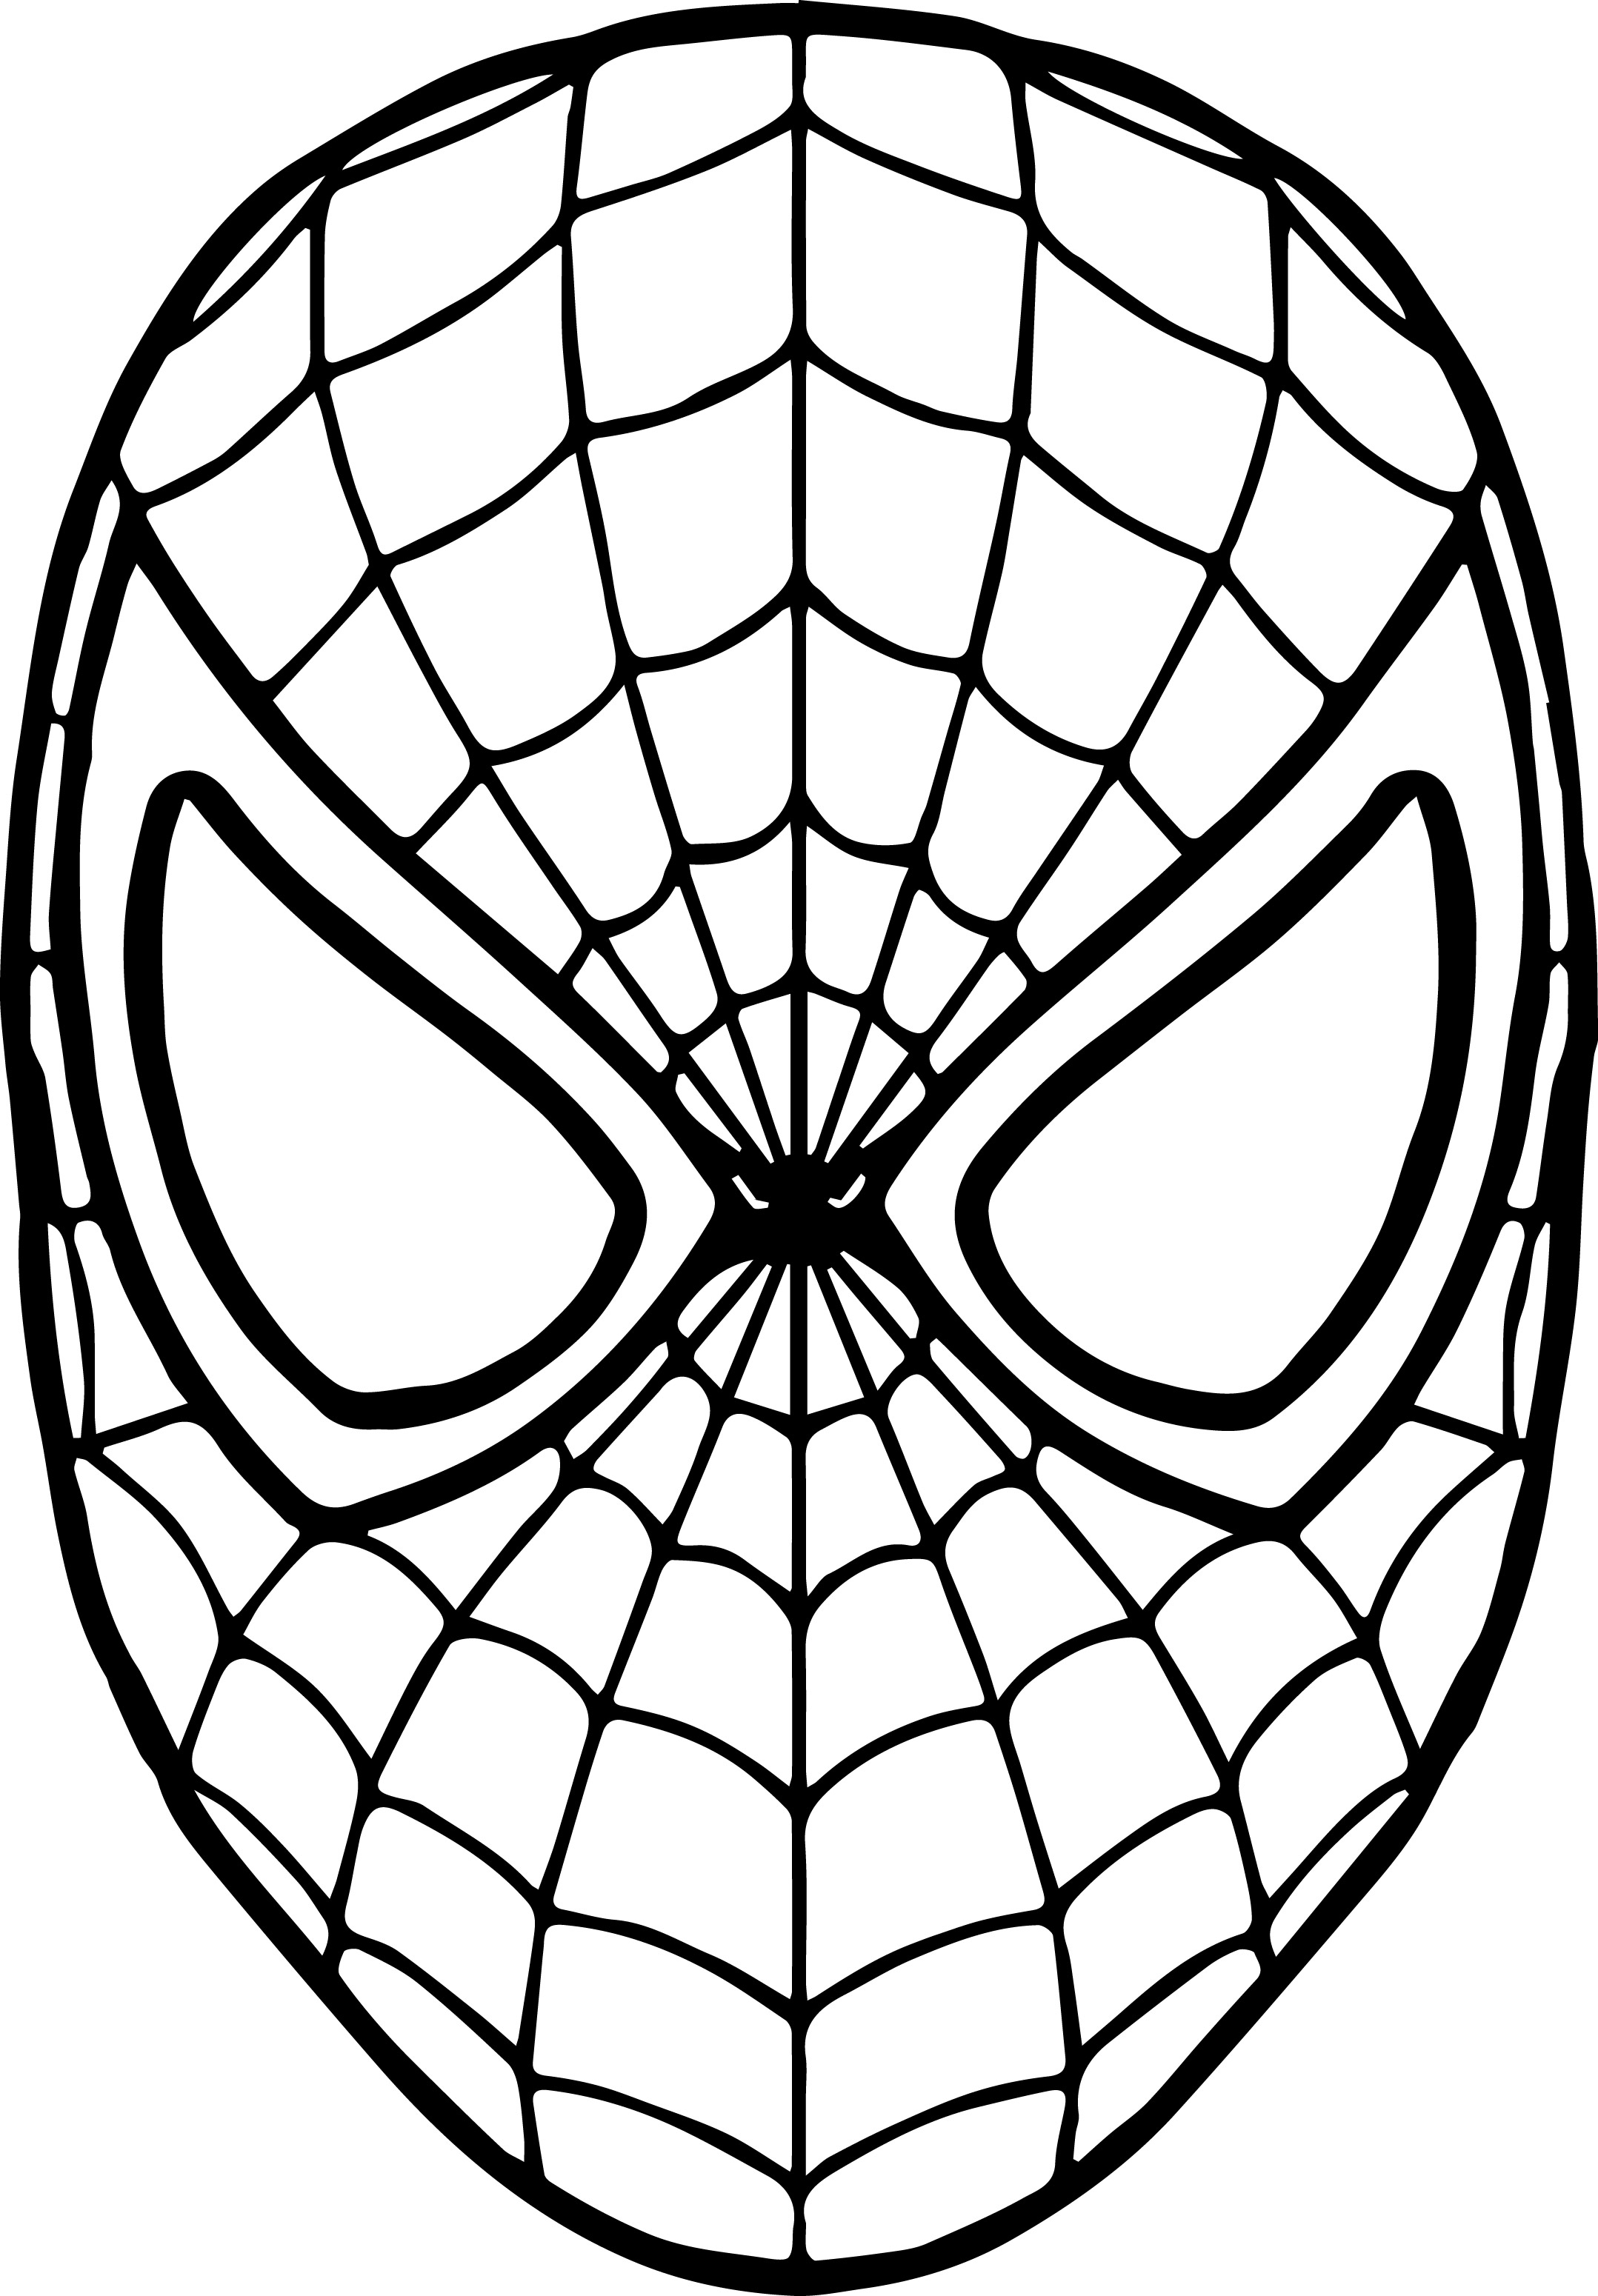 Spiderman Mask Drawing At Getdrawings